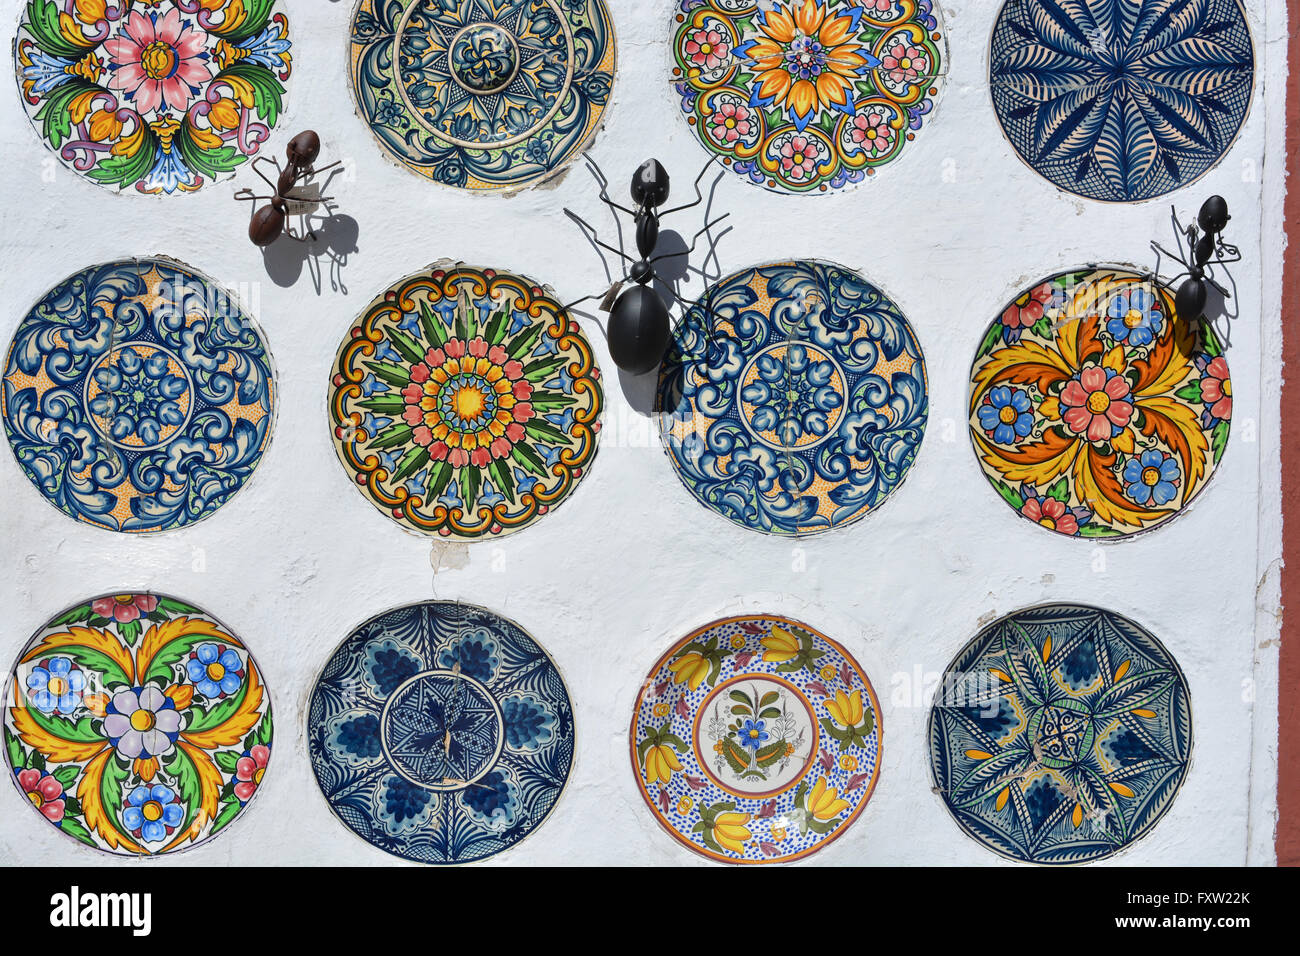 Display of hand-painted ceramic plates and metal ants decorating the wall of a souvenir shop Gata de Gorgos Valencia Spain. & Display of hand-painted ceramic plates and metal ants decorating the ...